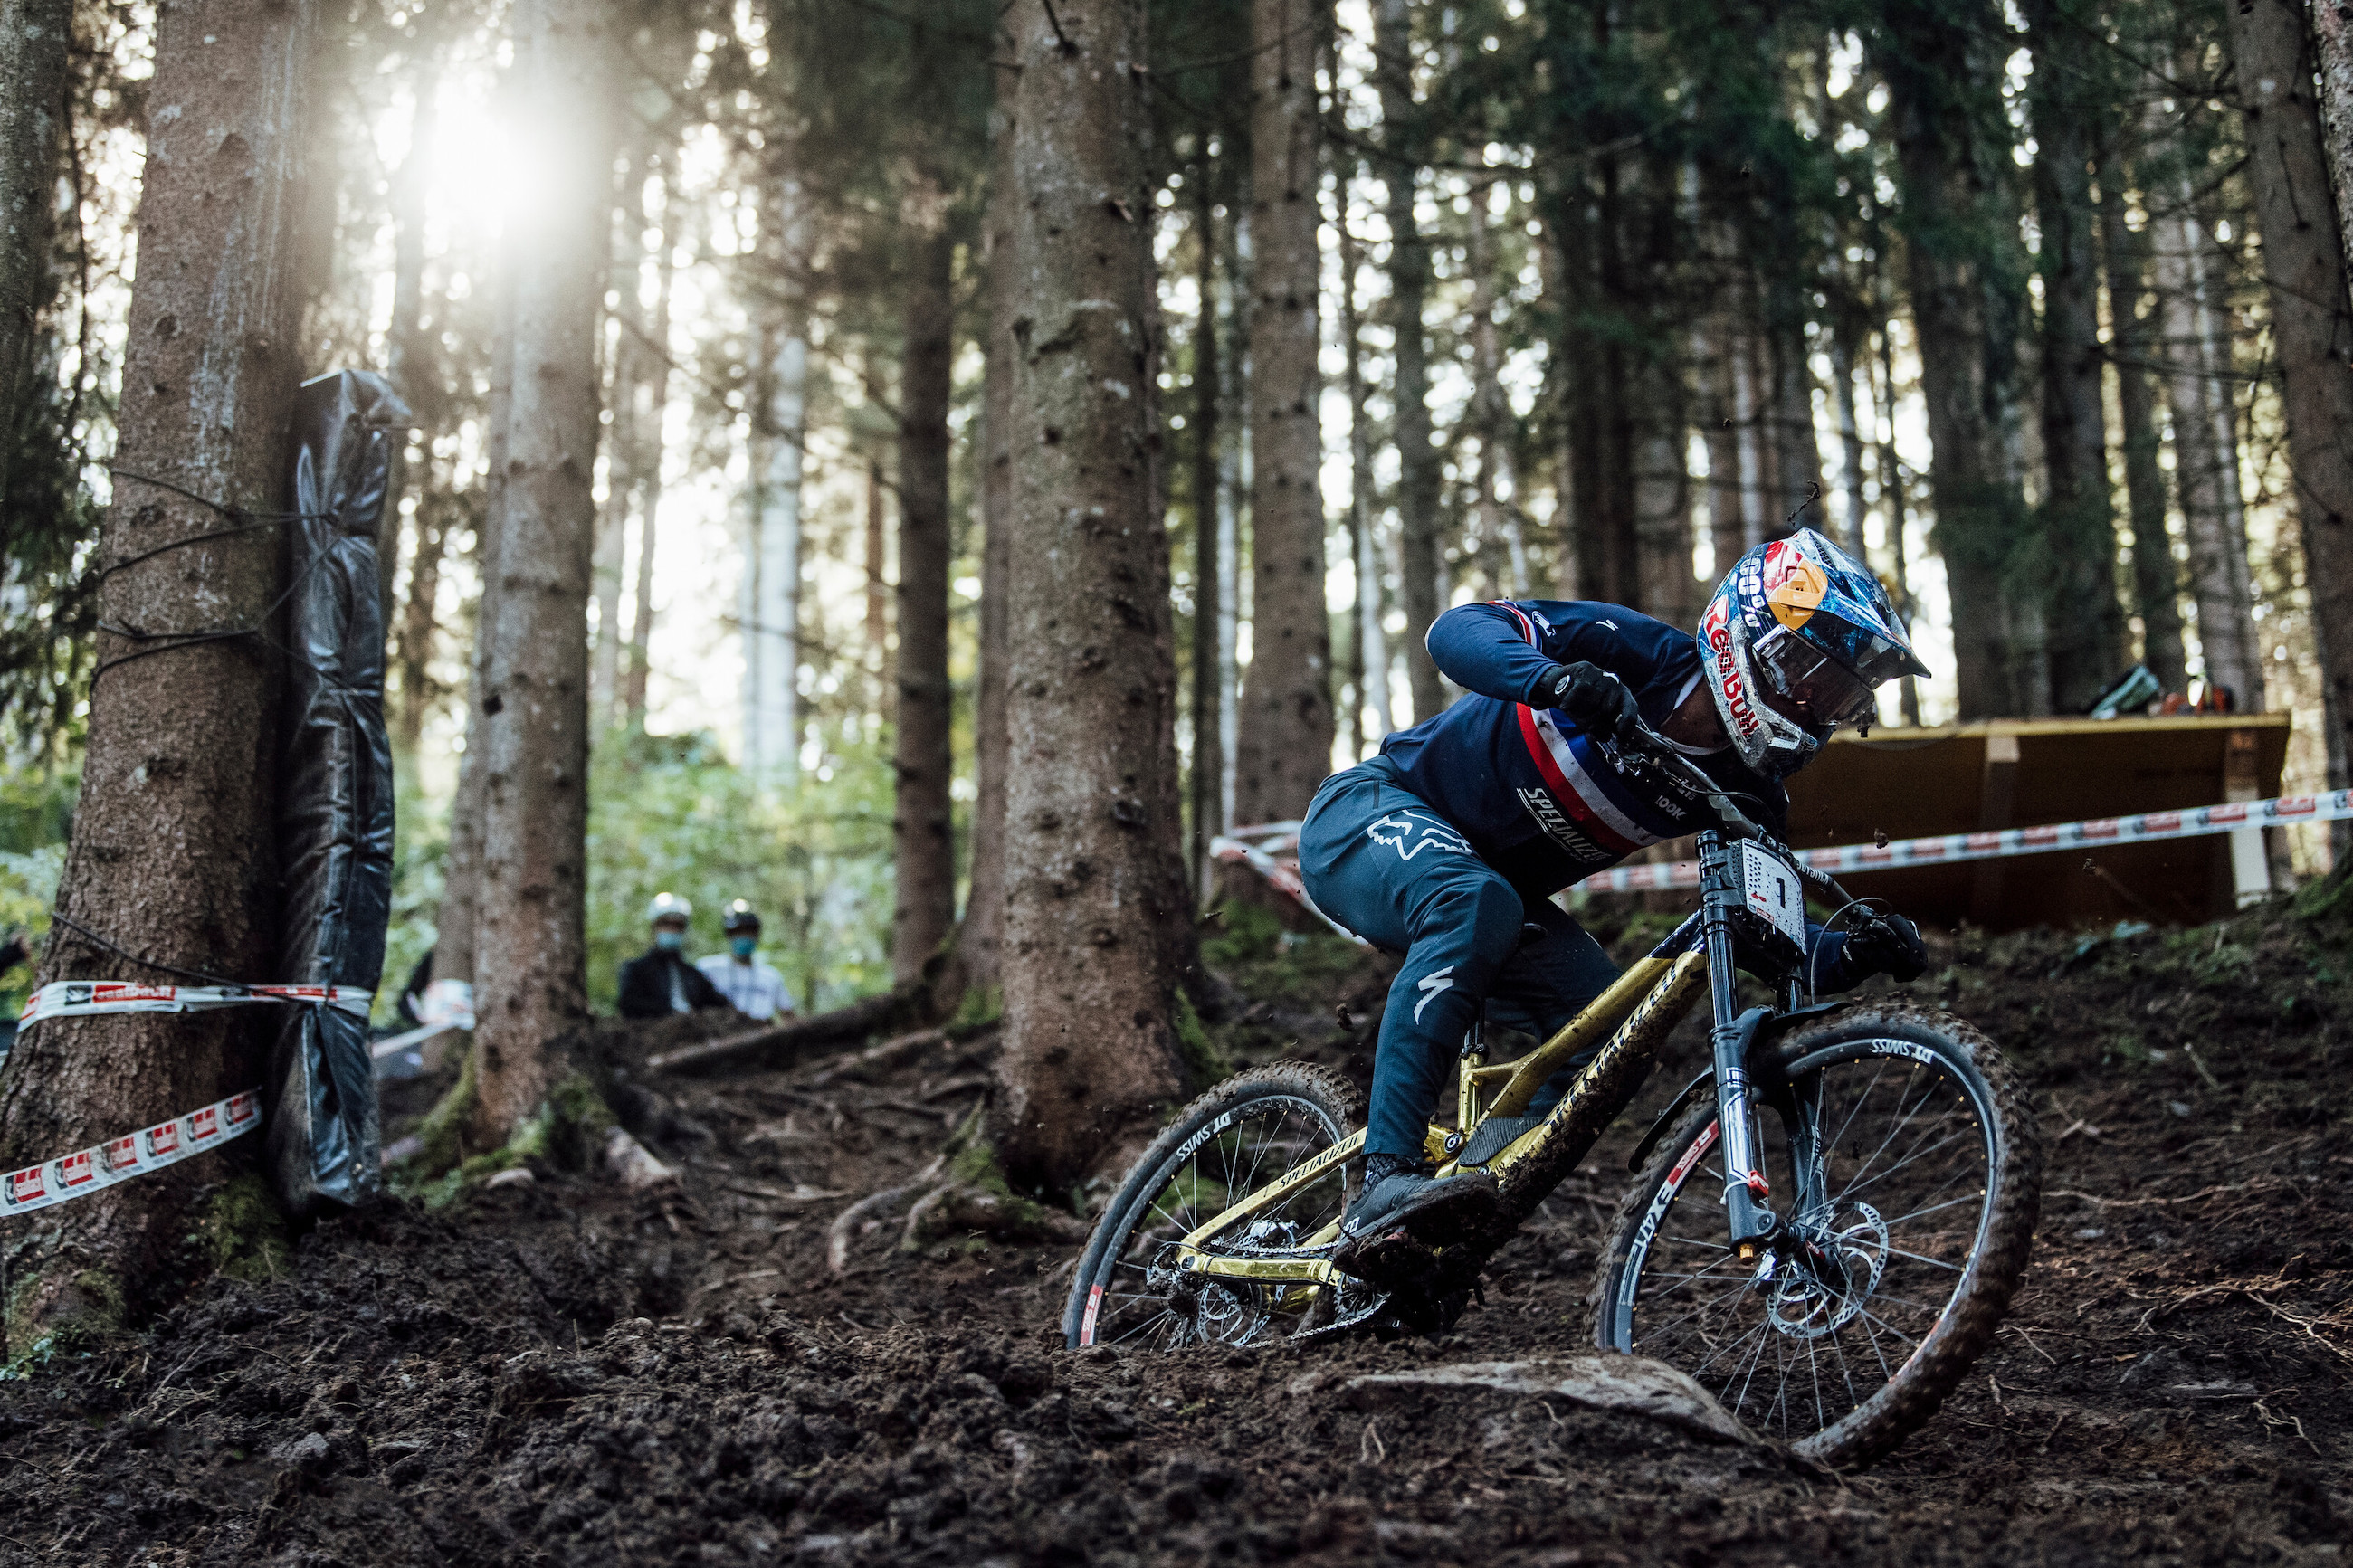 2021 Leogang World Cup Downhill Practice Video Highlights, 2021 Leogang World Cup Downhill Practice Video Highlights